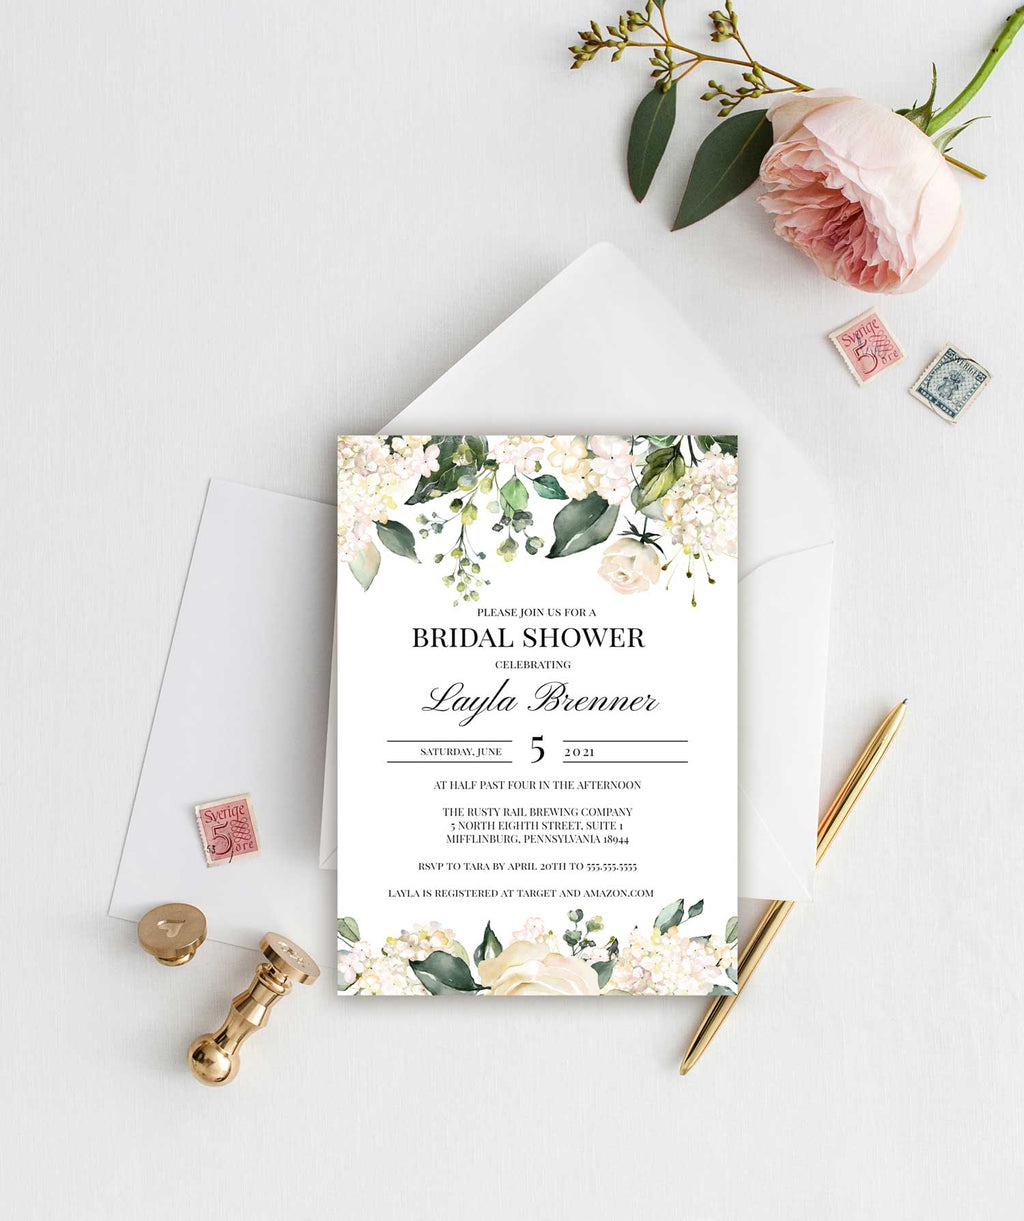 Ivory and White Roses Bridal Shower Invitation